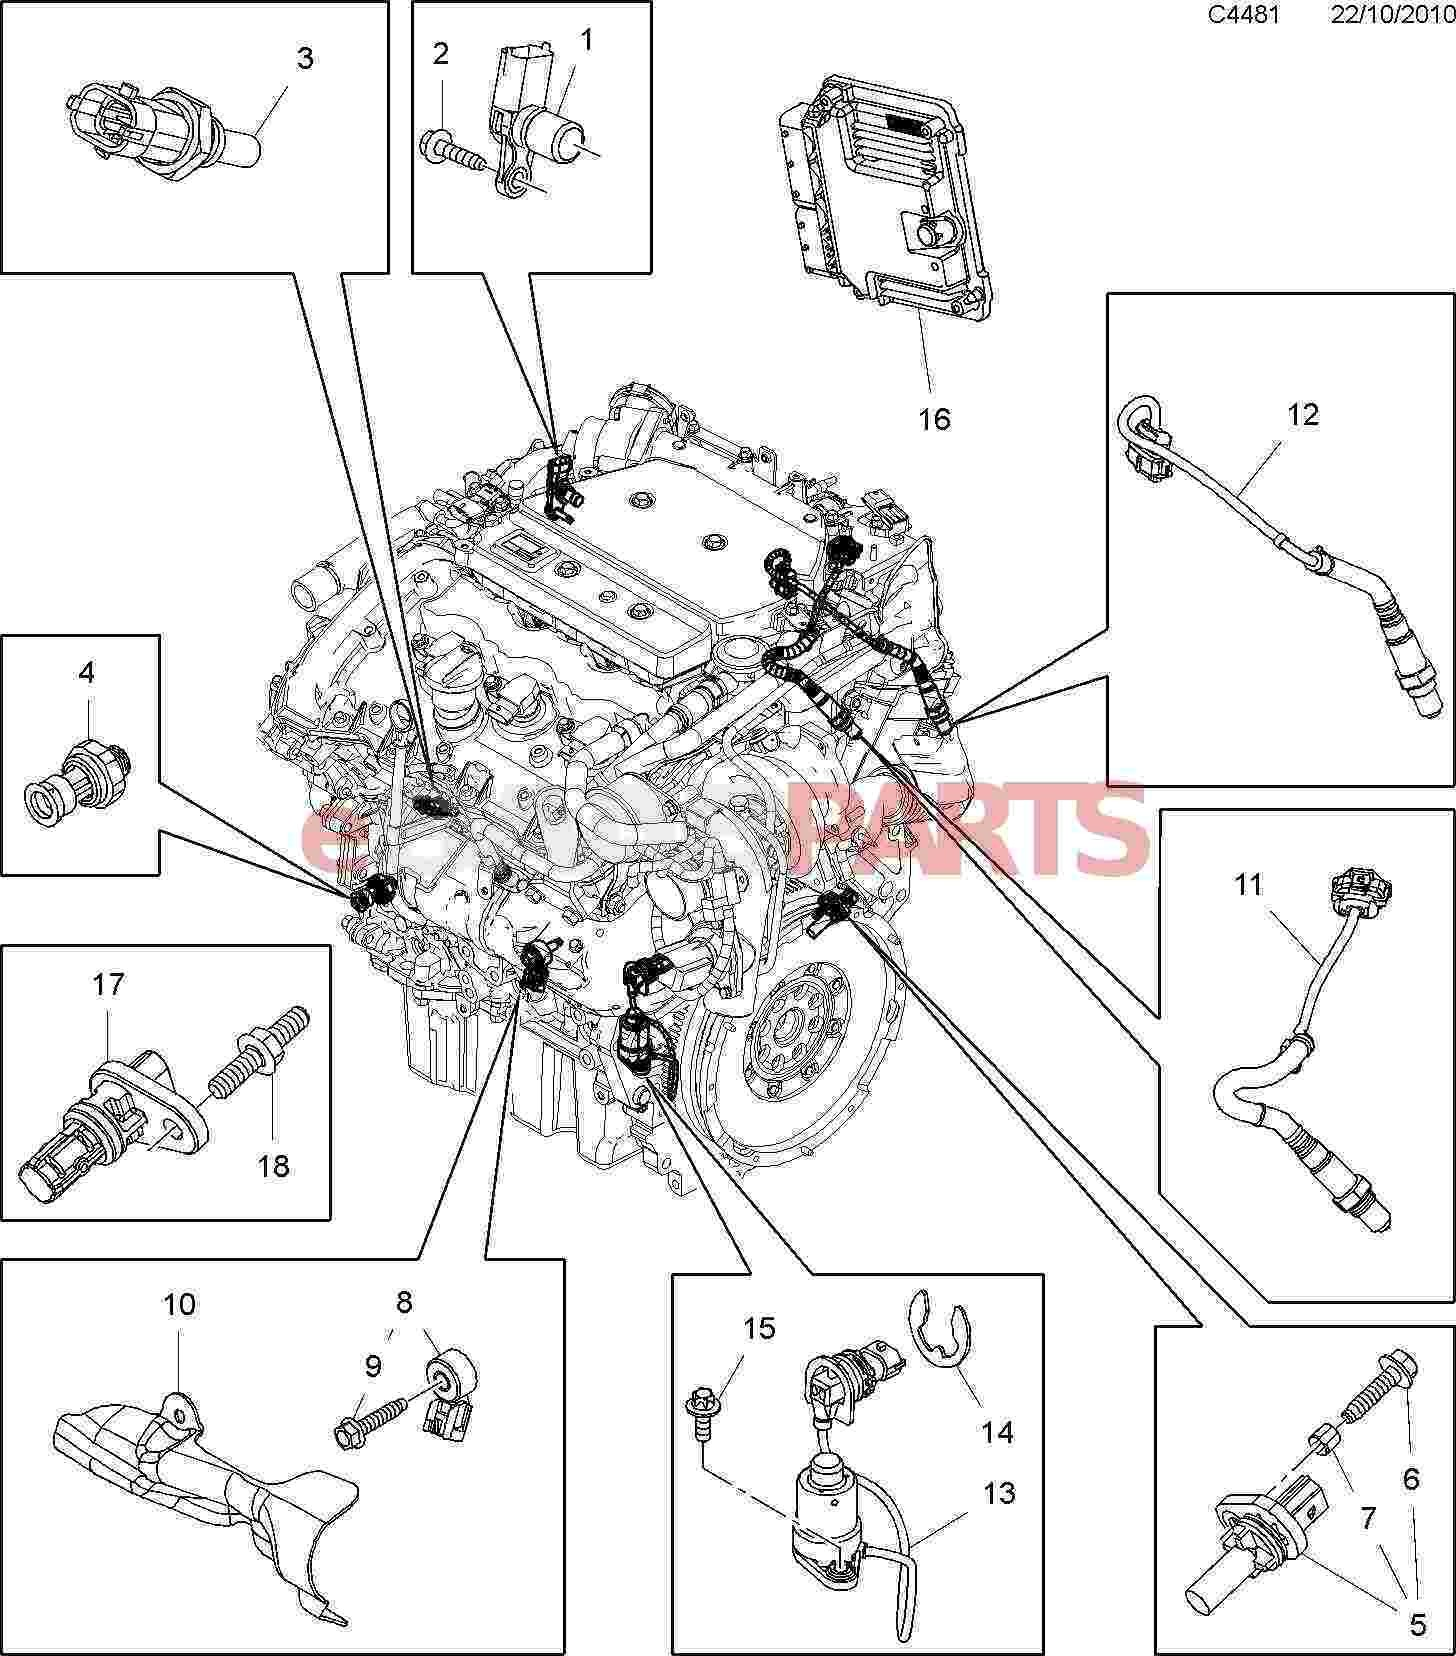 2004 Pontiac Gto Fuel System Diagram Wiring Schematic Just Another 1967 Diagrams Automotive Saab 9 5 Free For You U2022 Rh Scrappa Store Harness Engine